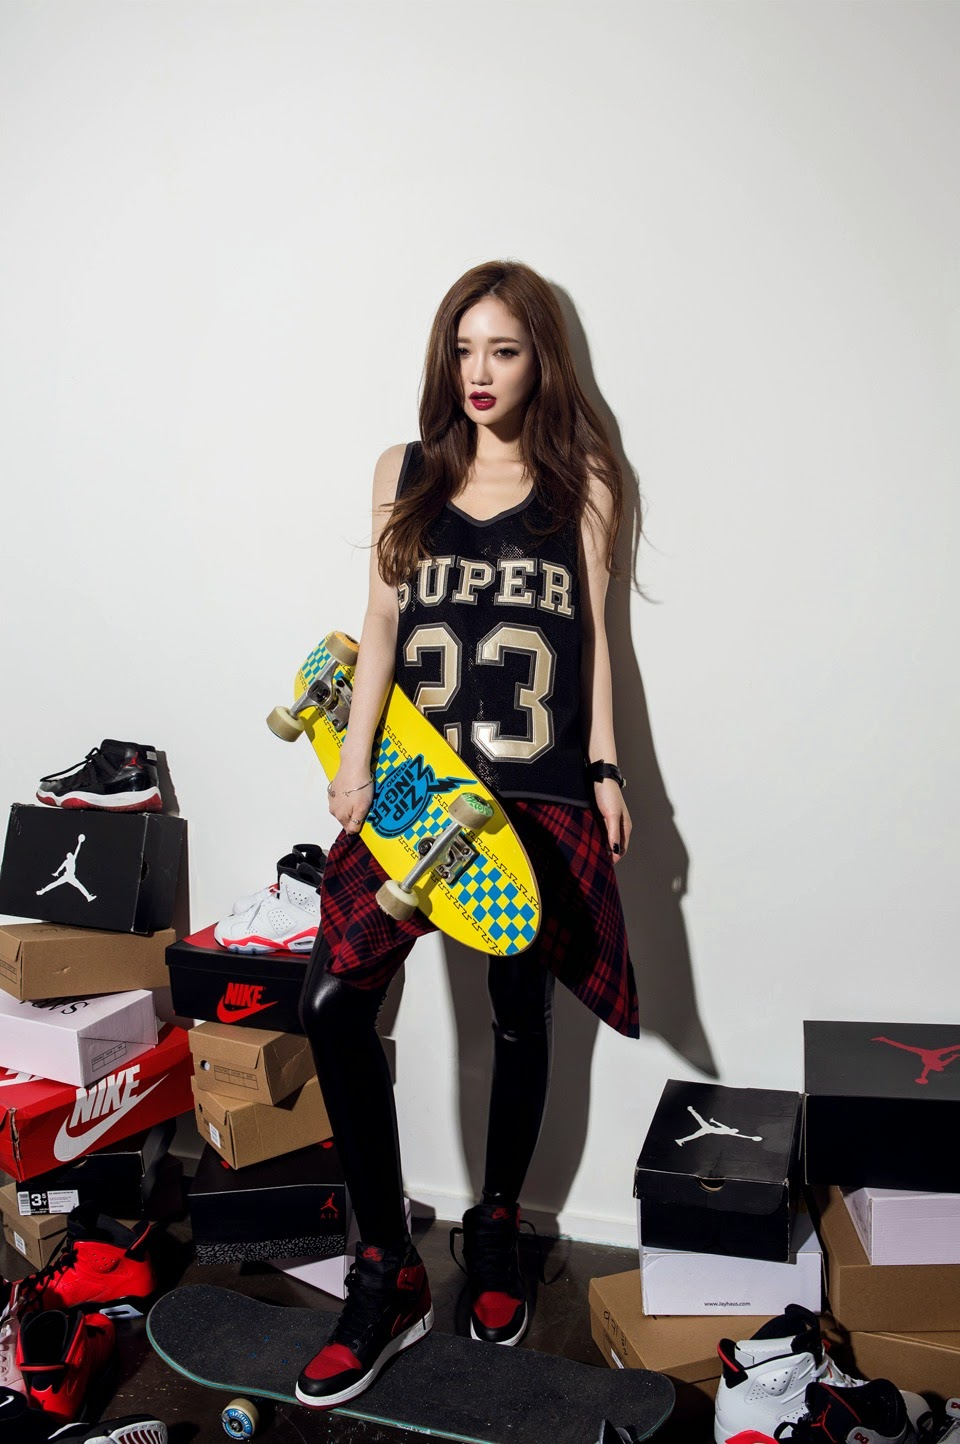 Sung Kyung Cool Skater Chick